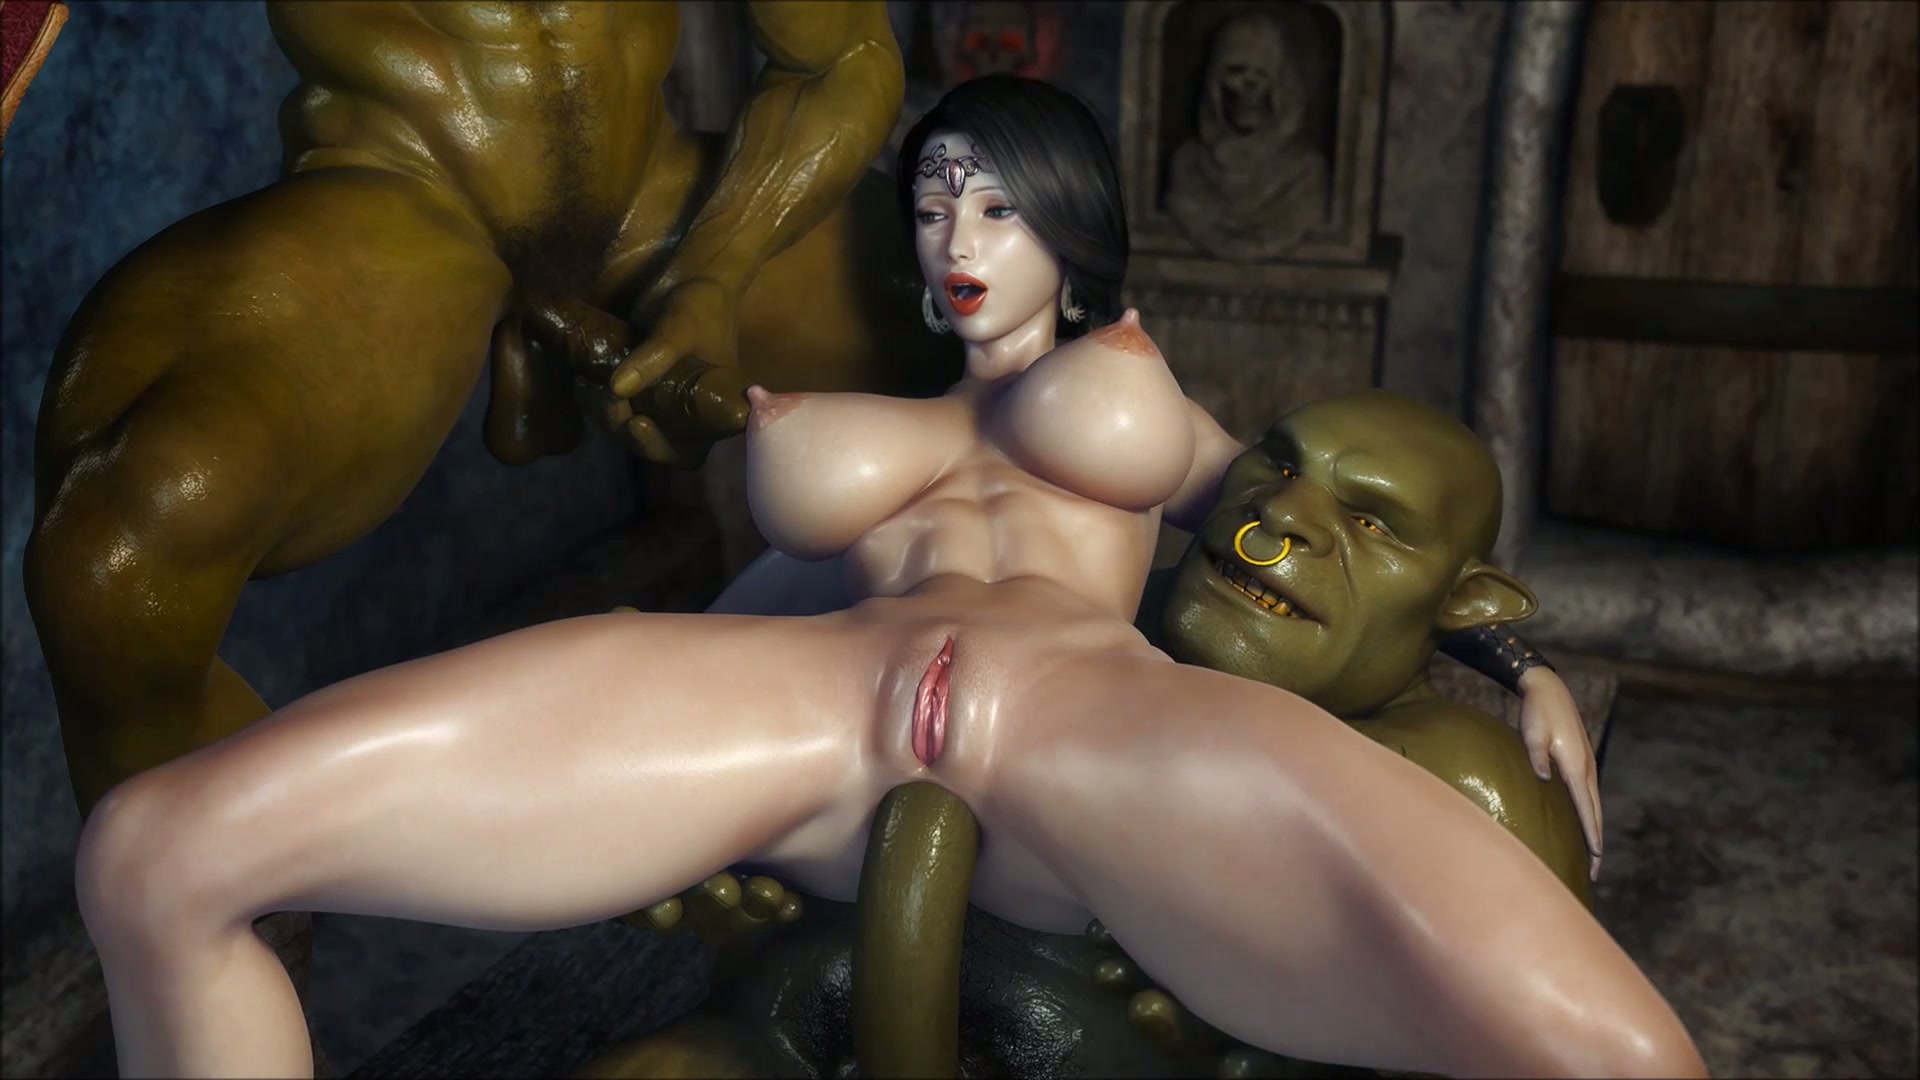 Monster fuck girl games porn scene